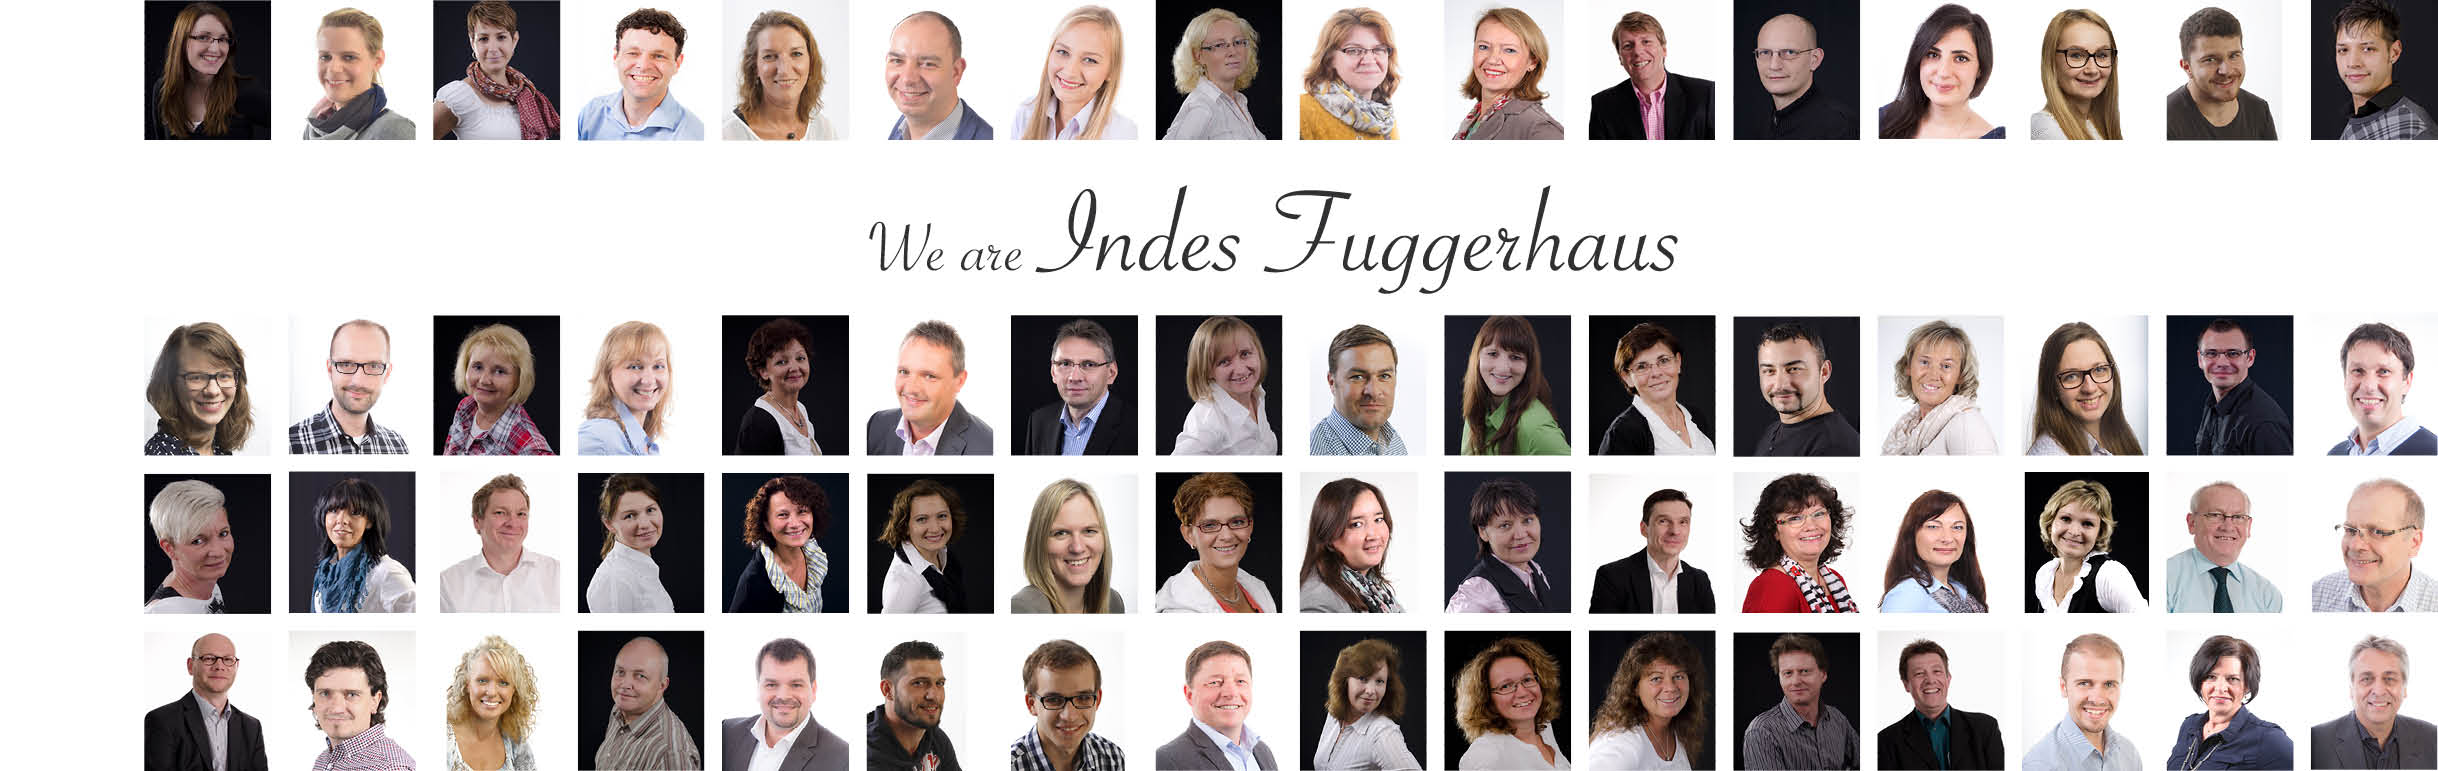 Team from Indes Fuggerhaus Textil GmbH